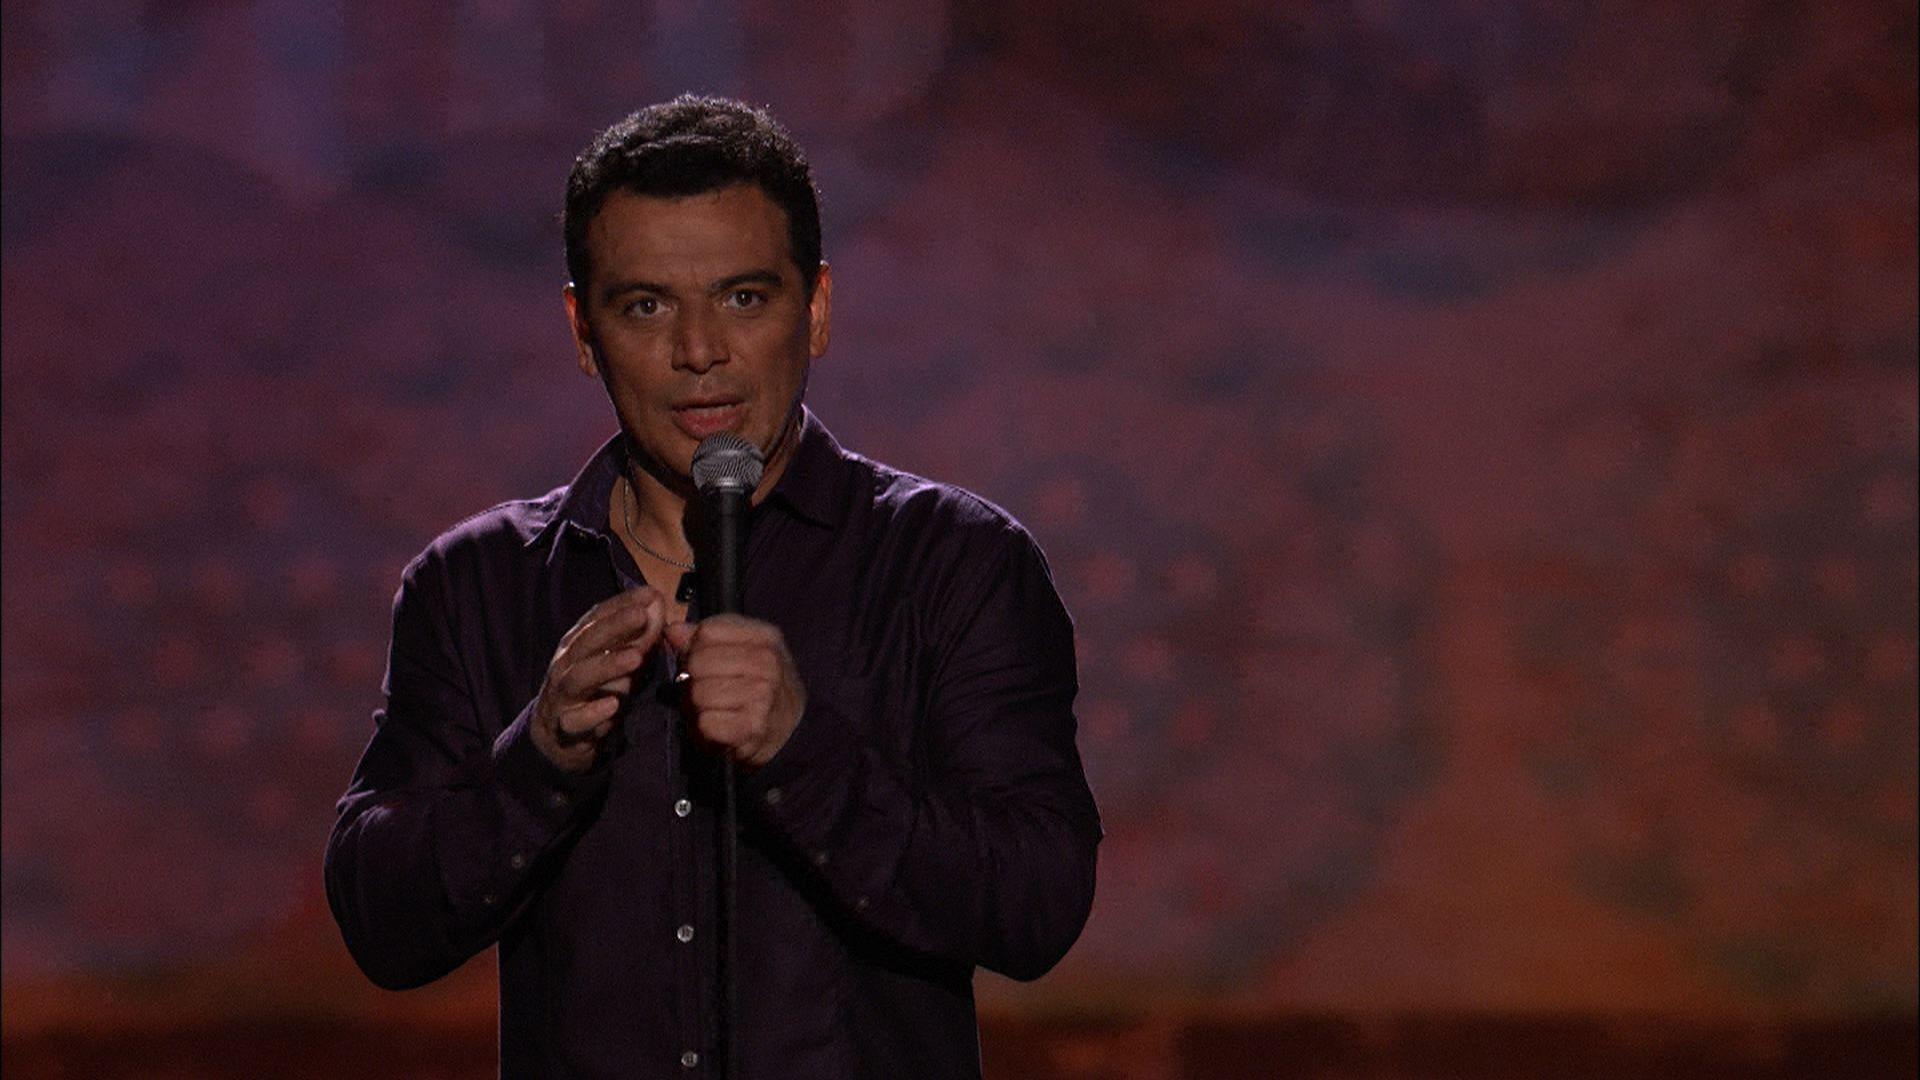 carlos mencia not for the easily offendedcarlos mencia twitter, carlos mencia wiki, carlos mencia net worth, carlos mencia wife, carlos mencia not for the easily offended, carlos mencia joe rogan video, carlos mencia 2014, carlos mencia now, carlos mencia tour, carlos mencia youtube, carlos mencia steals jokes, carlos mencia dee dee dee, carlos mencia stand up, carlos mencia 2015, carlos mencia upcoming events, carlos mencia miami, carlos mencia new territory, carlos mencia plagiarism